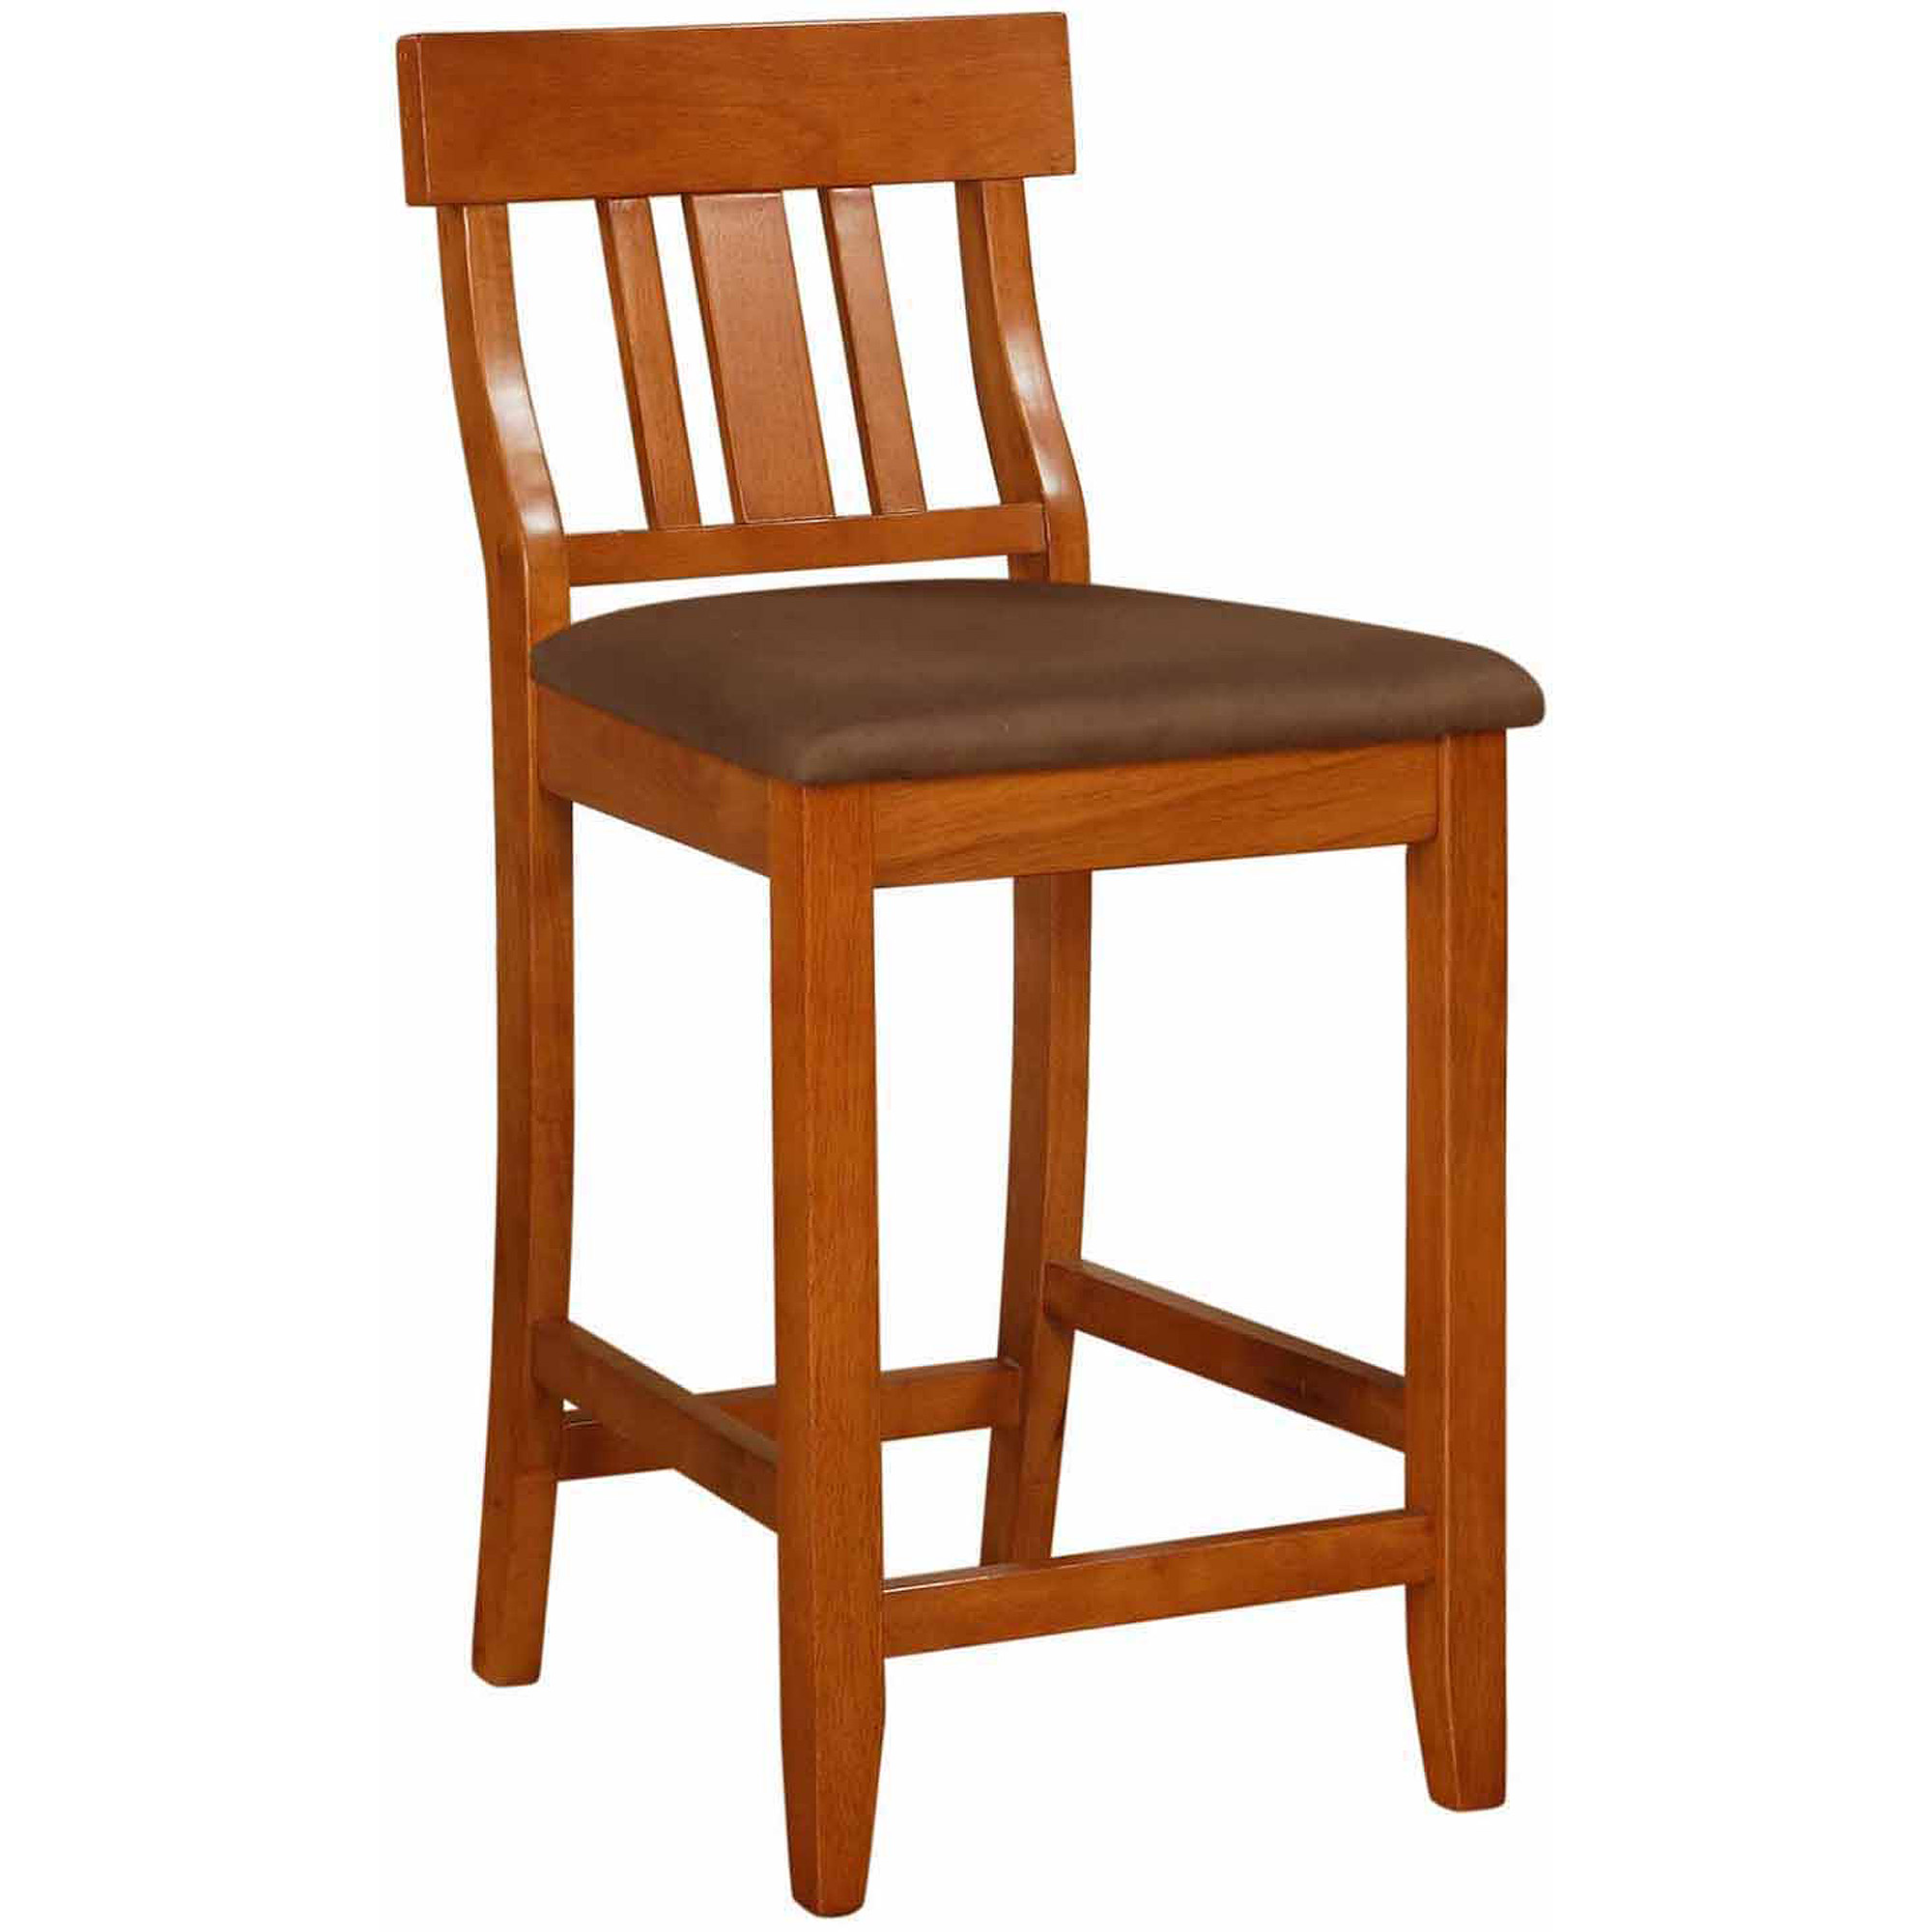 Linon Torino Collection Slat Back Bar Stool, Brown, 30 inch Seat Height